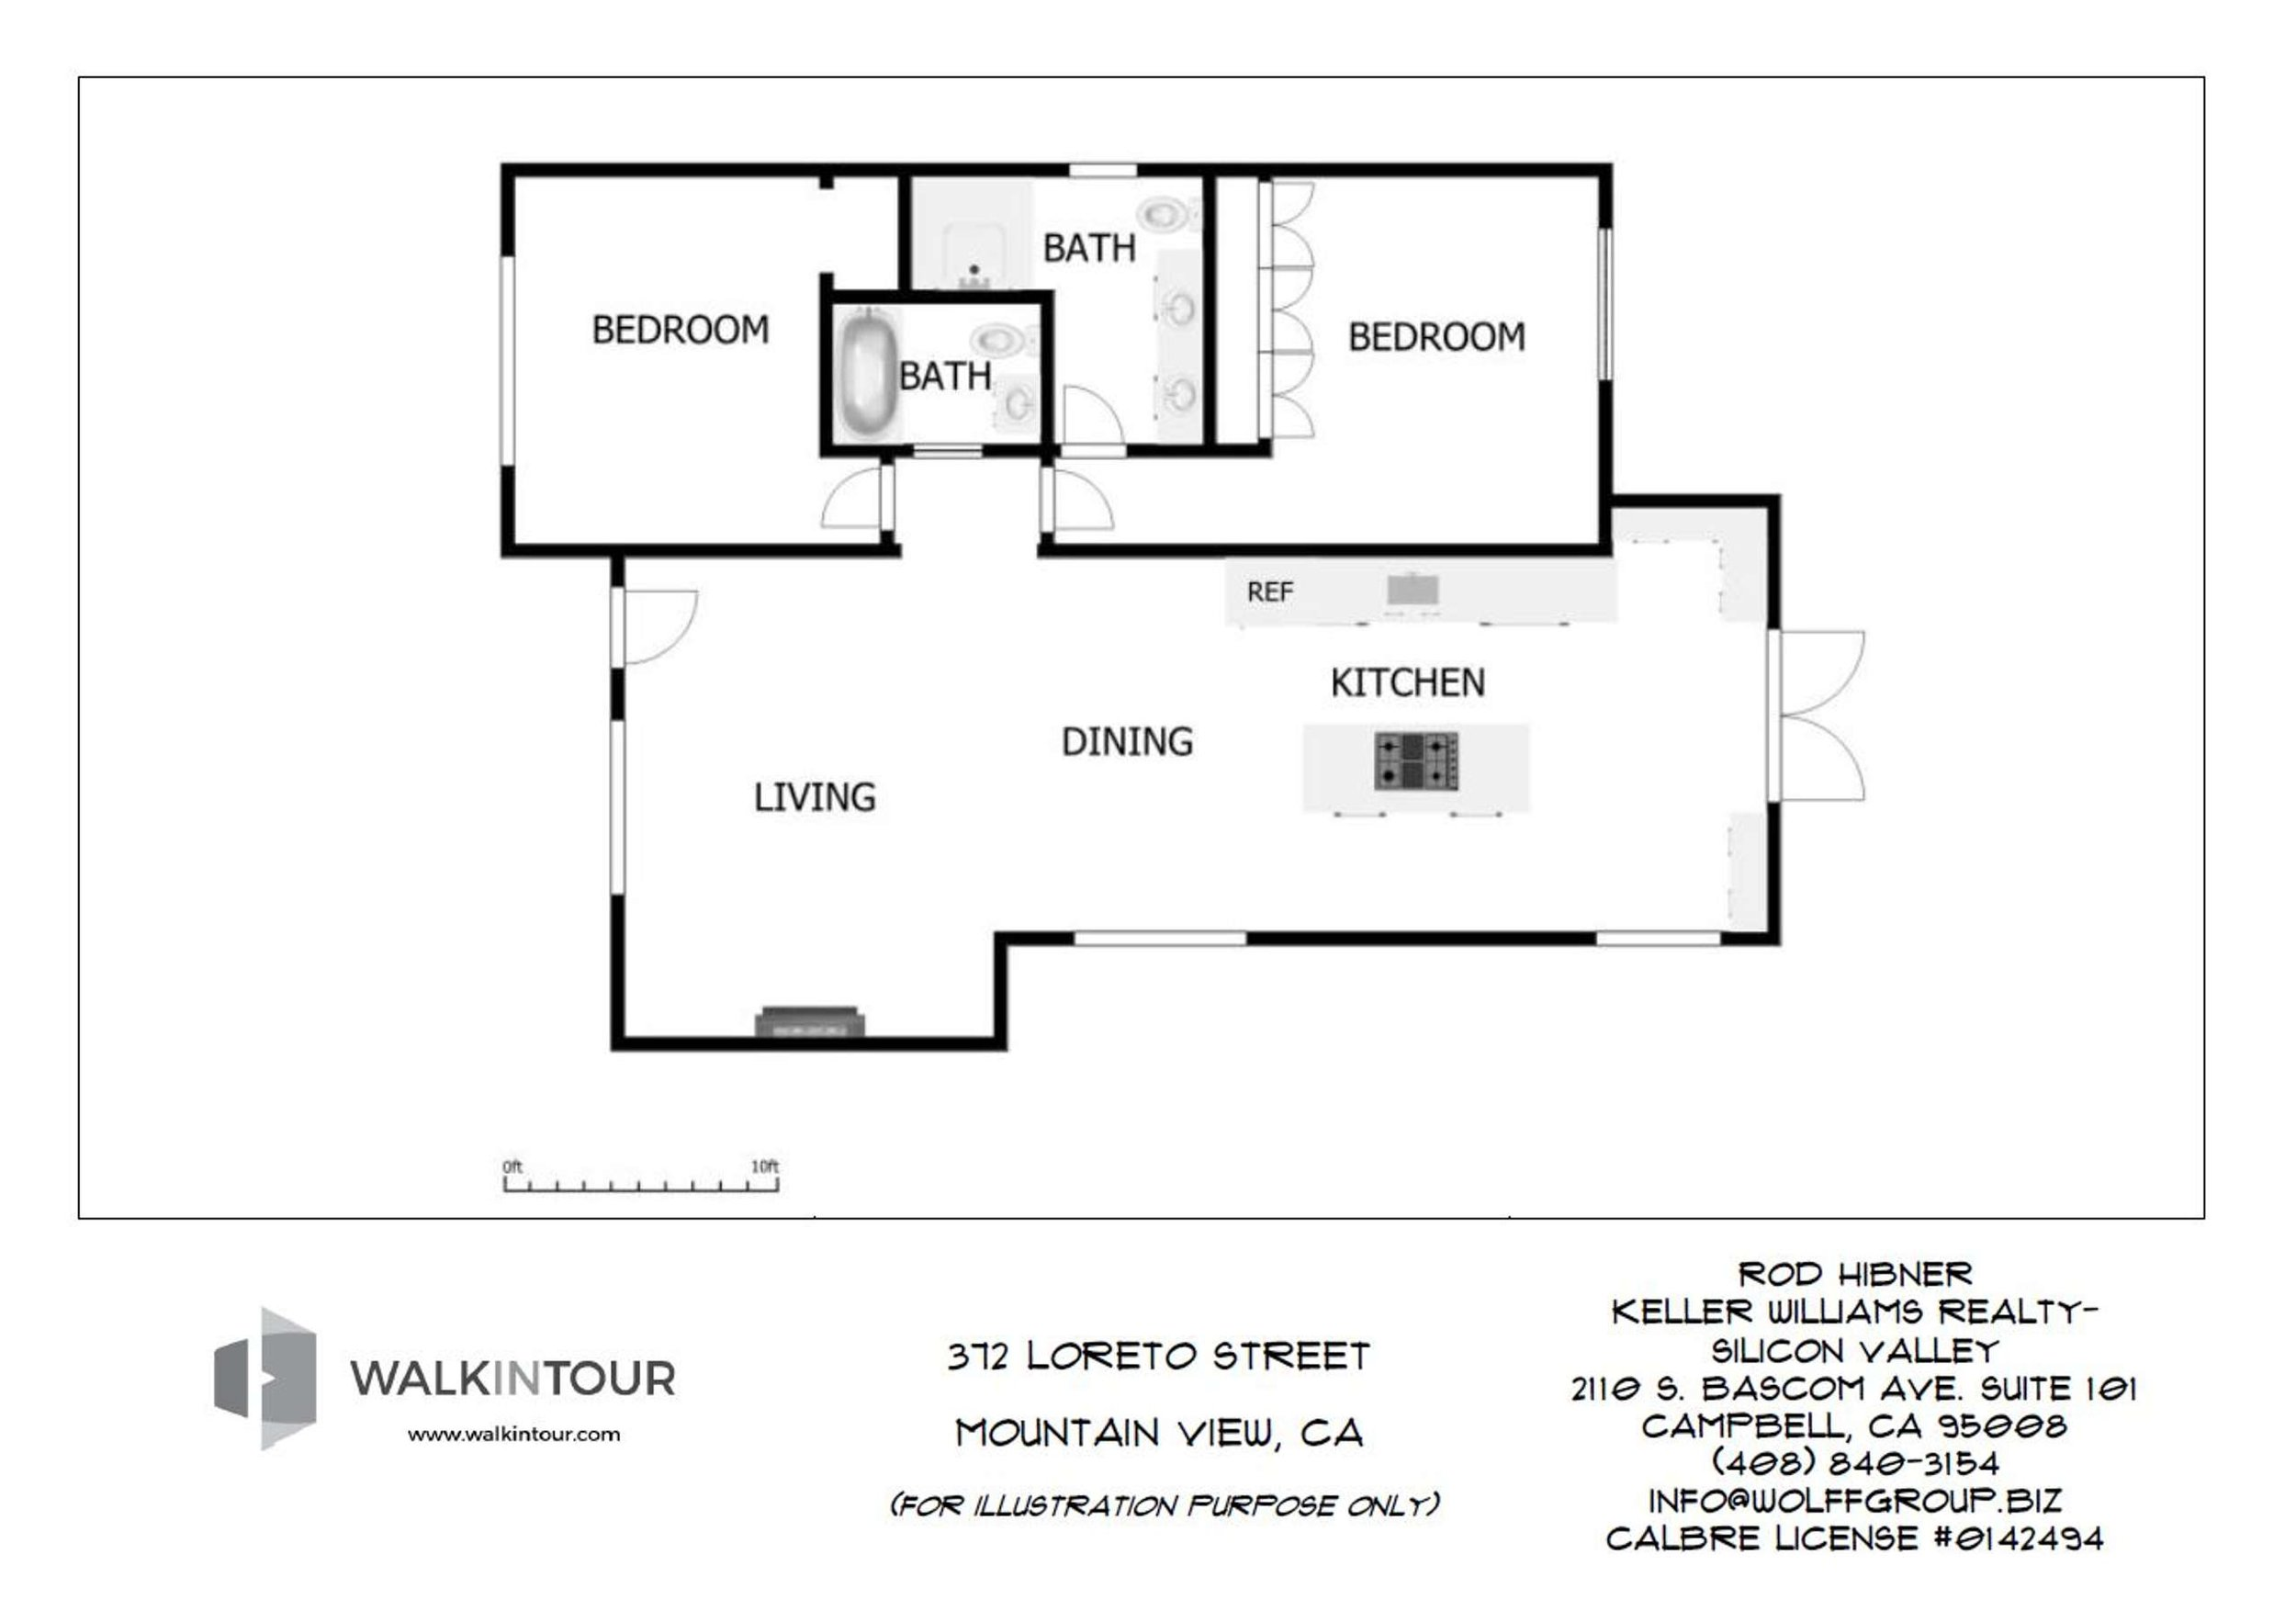 372_Loreto_Street Mountain_View California 43.jpg